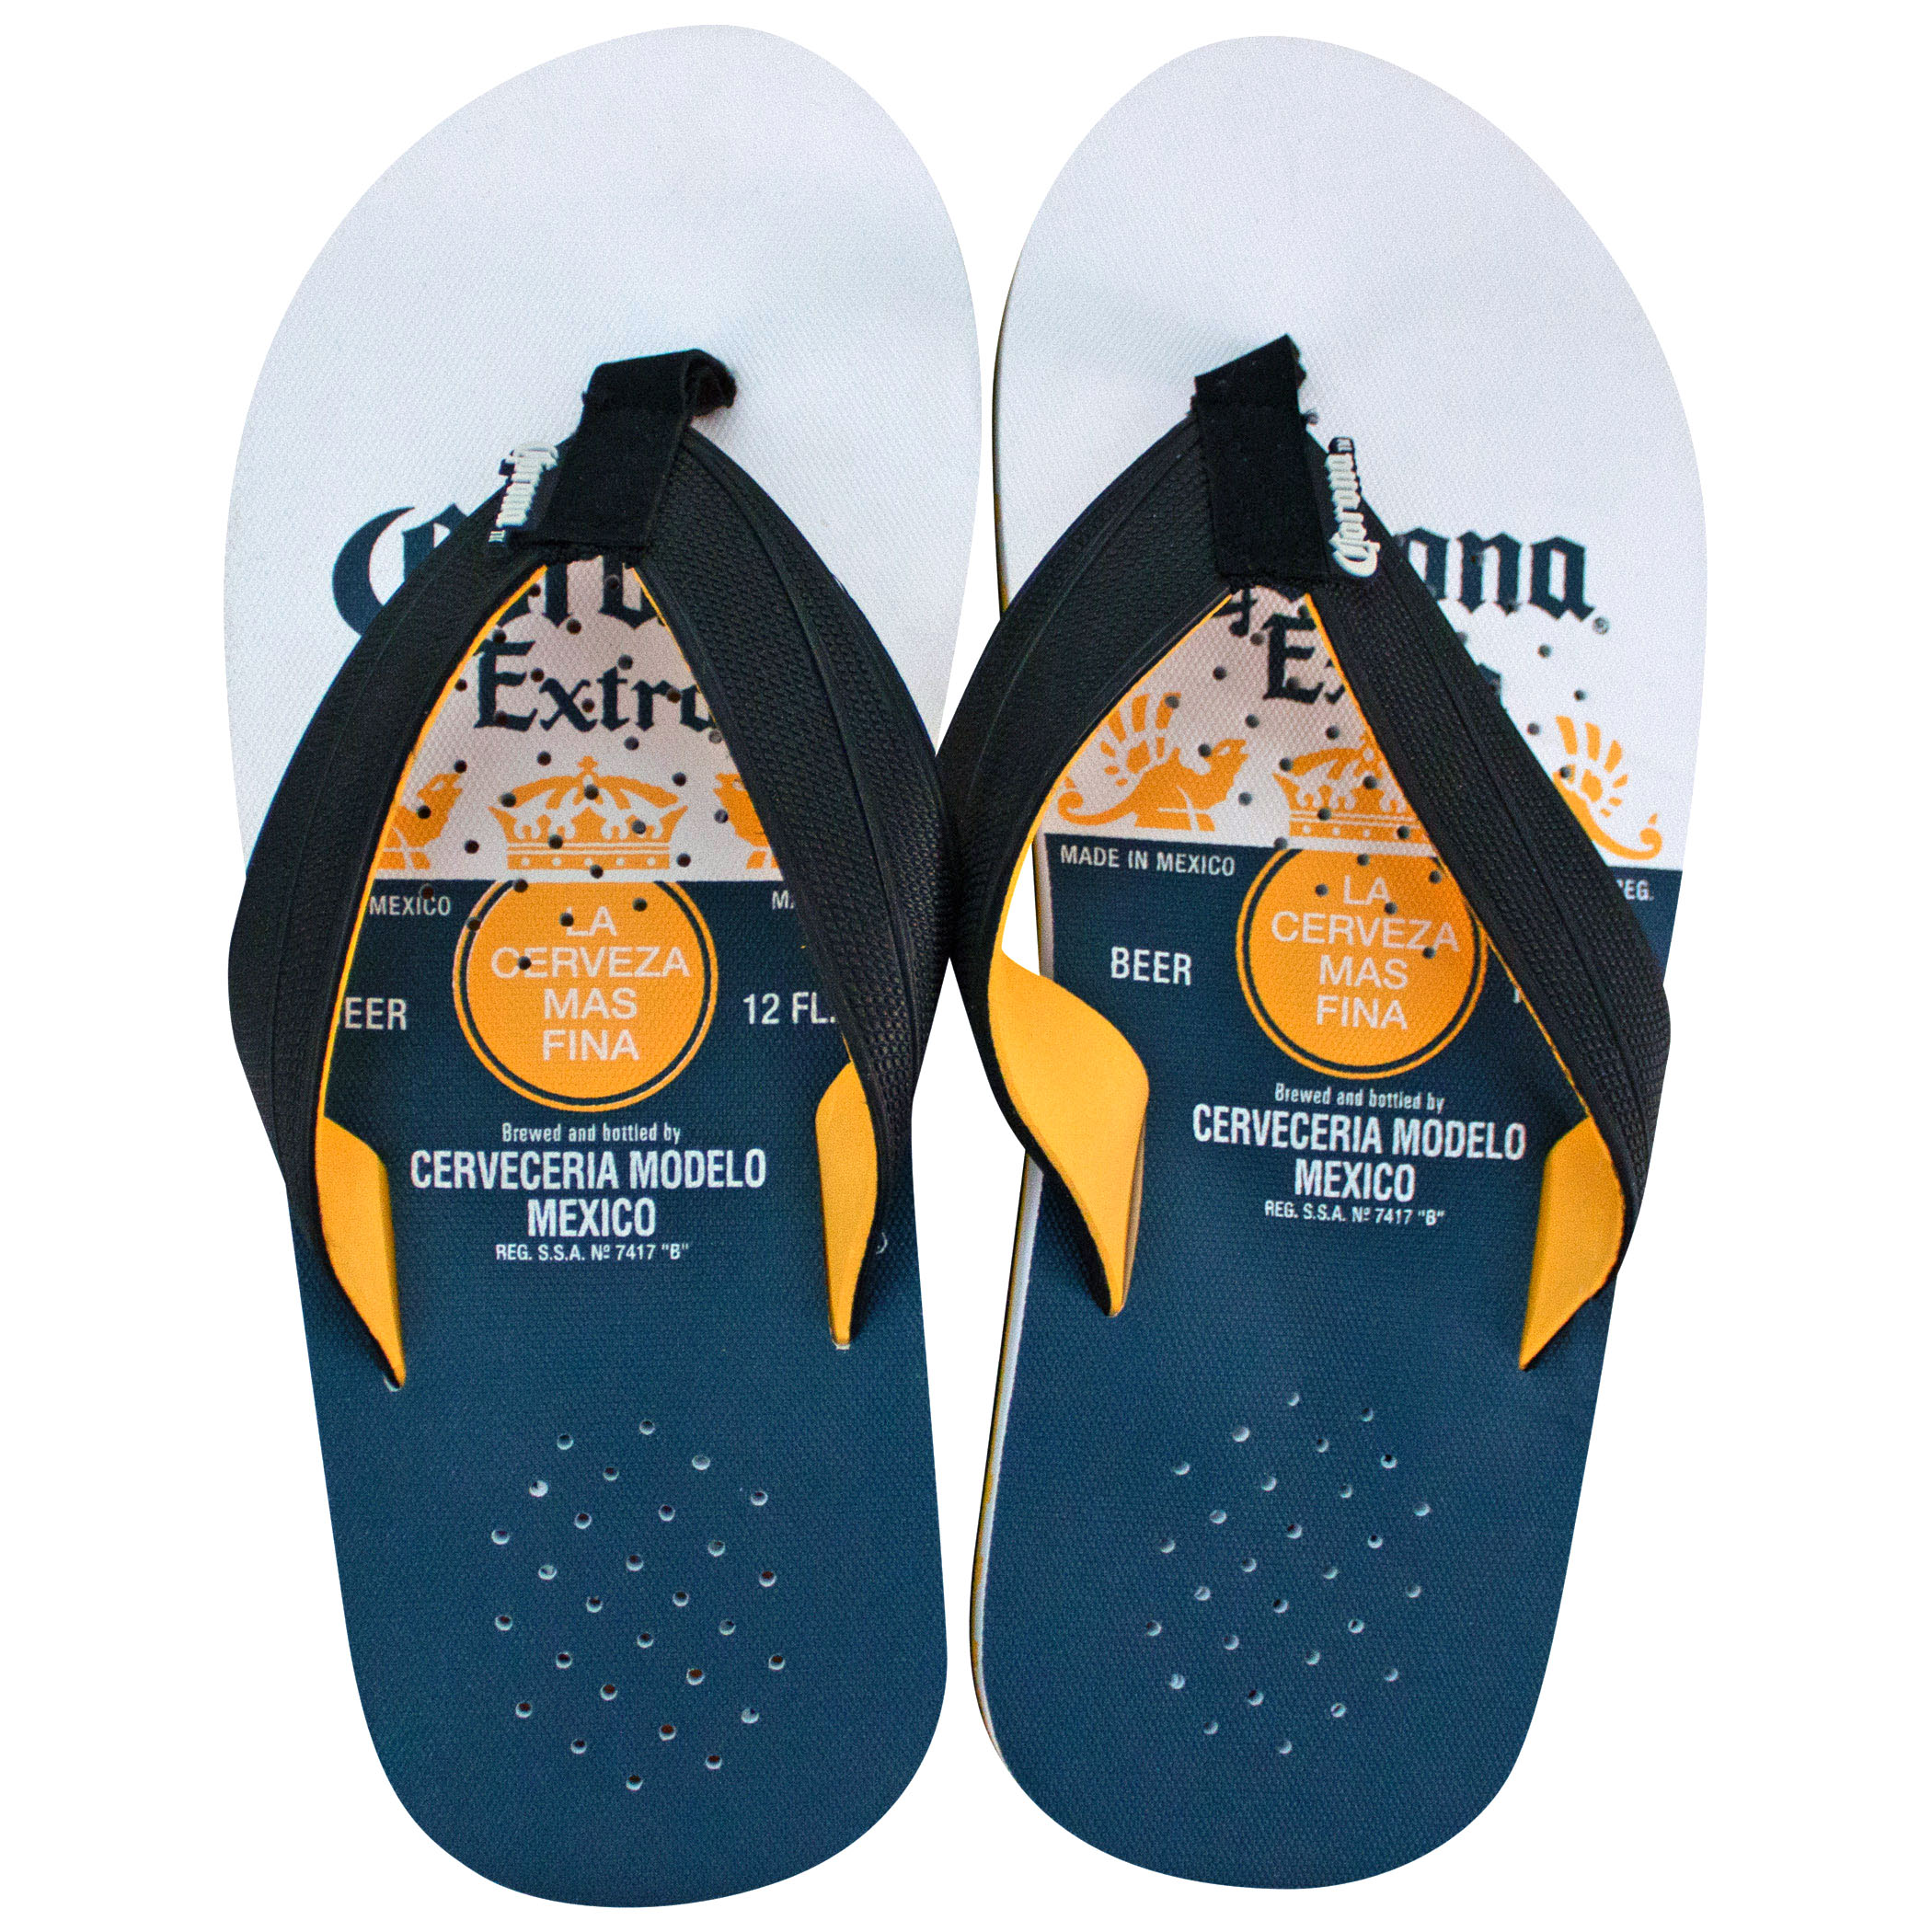 Corona Extra Bottle Label Blue And White Sandals